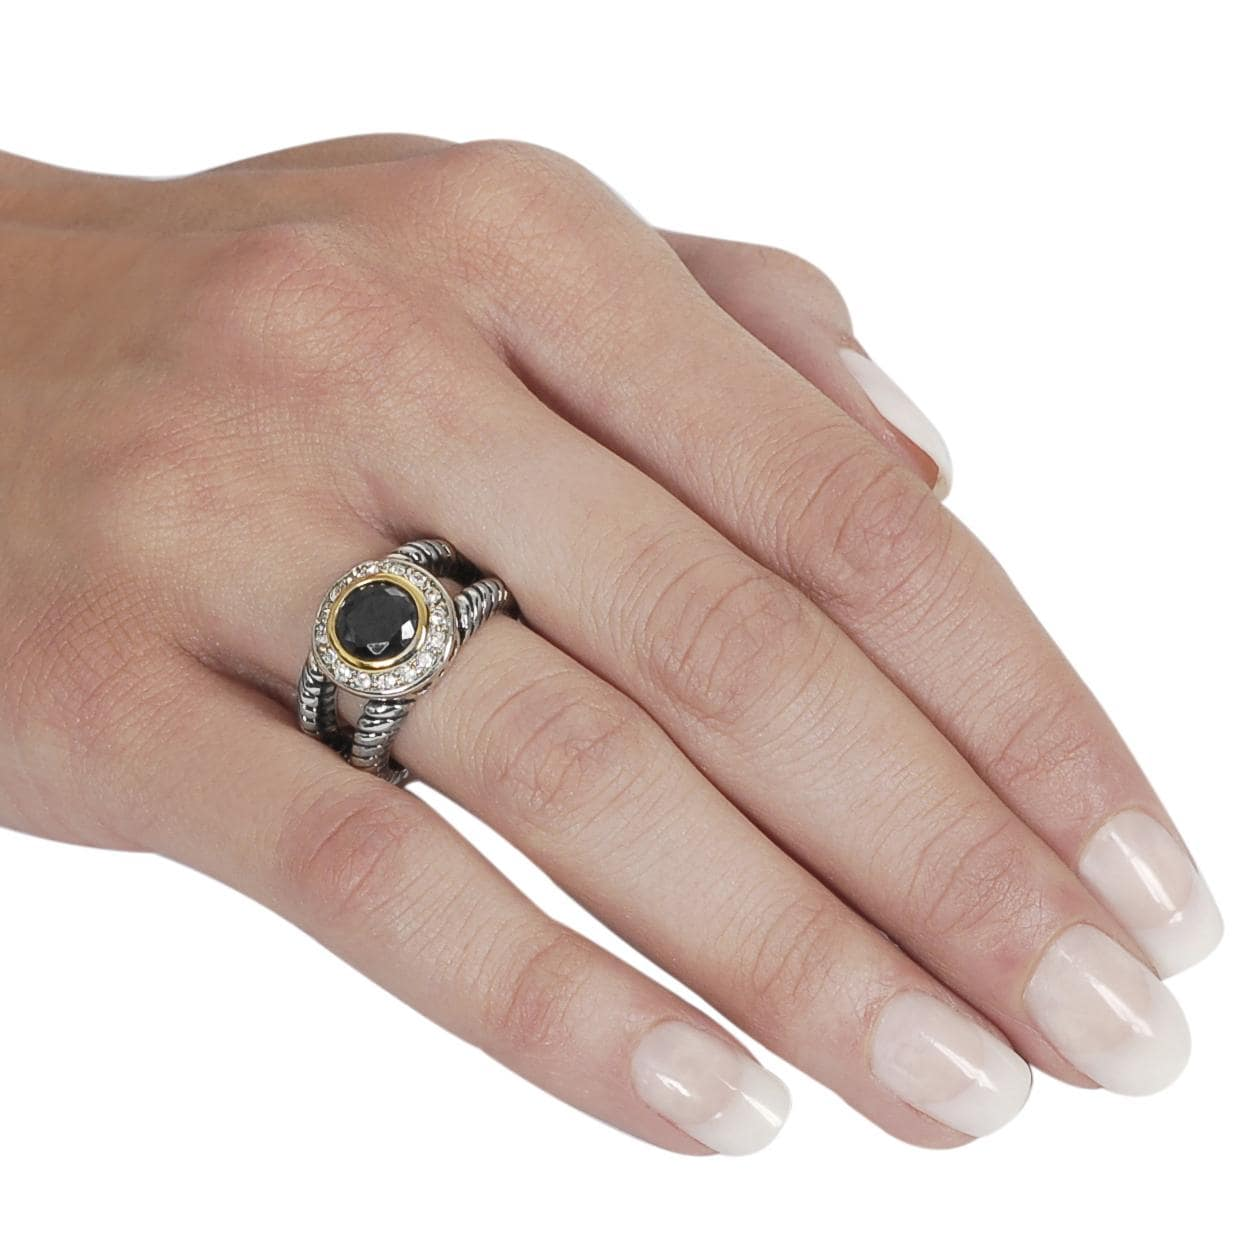 Journee Collection Two-tone Black and White CZ Twist Ring